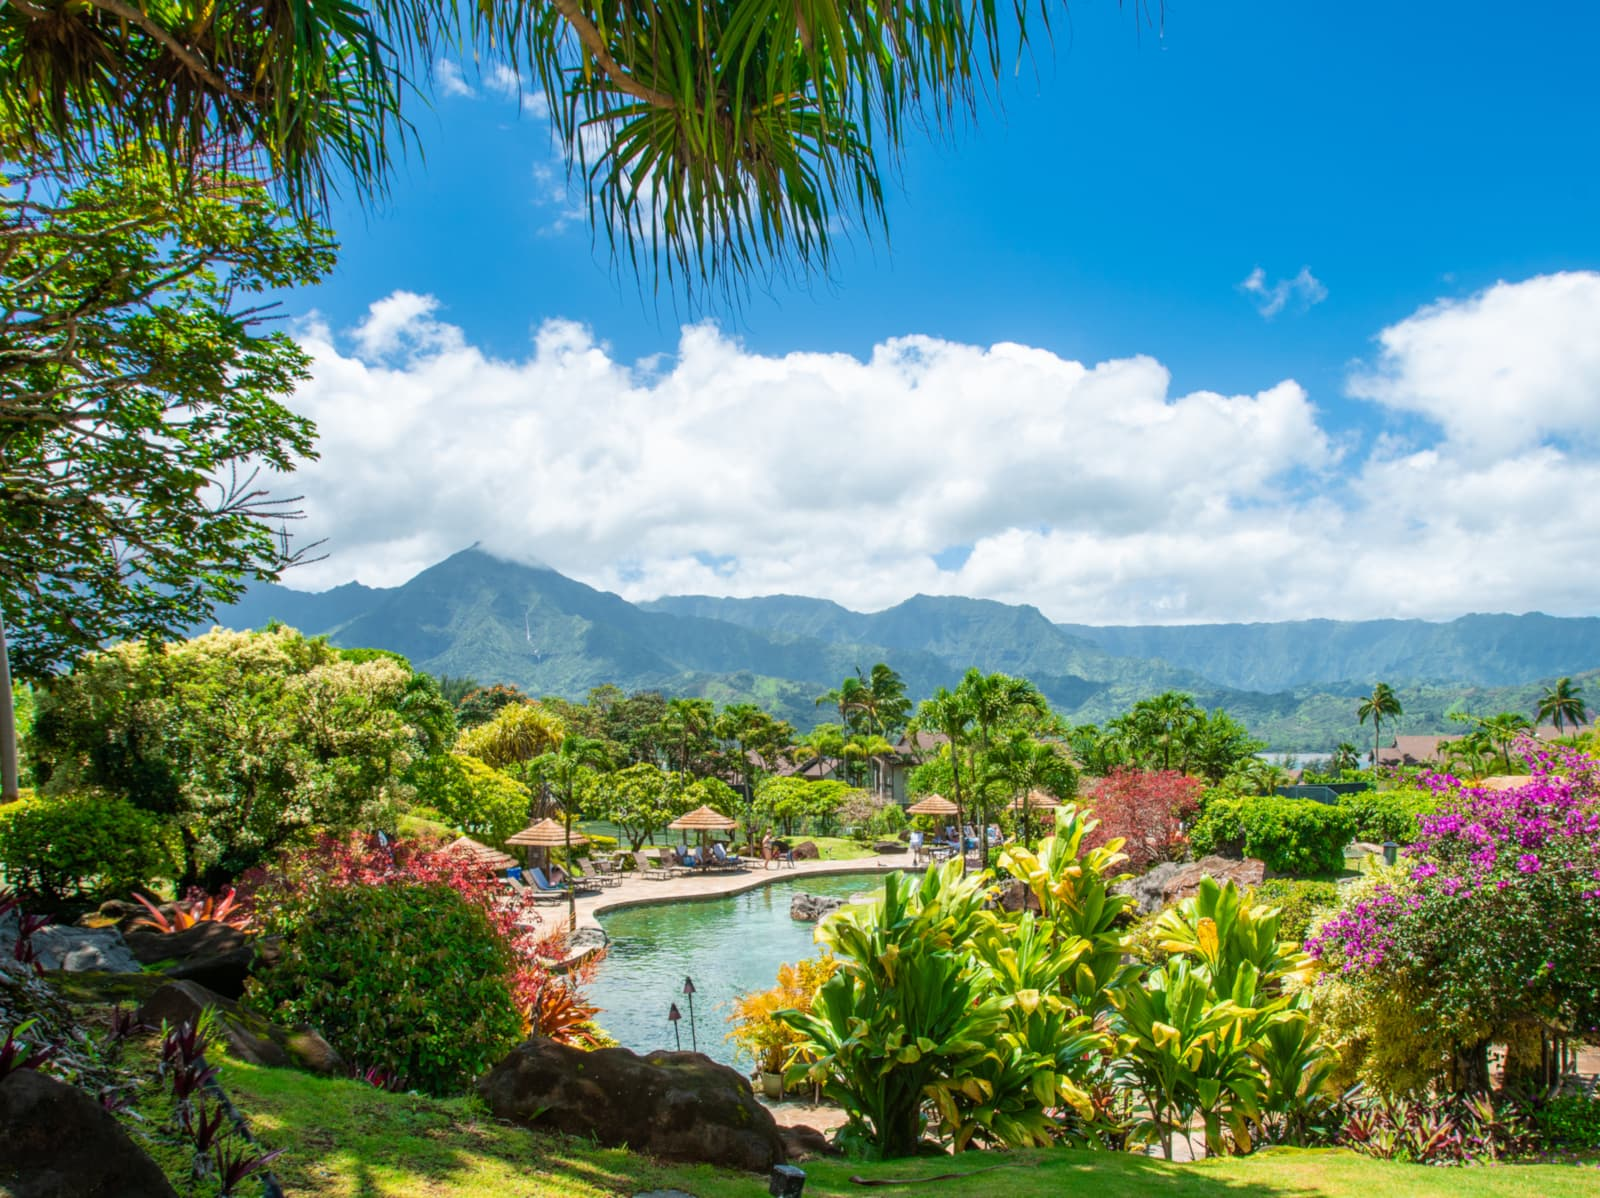 The Hanalei Bay Resort - one of the best tennis resorts for your tennis holidays in Hawaii